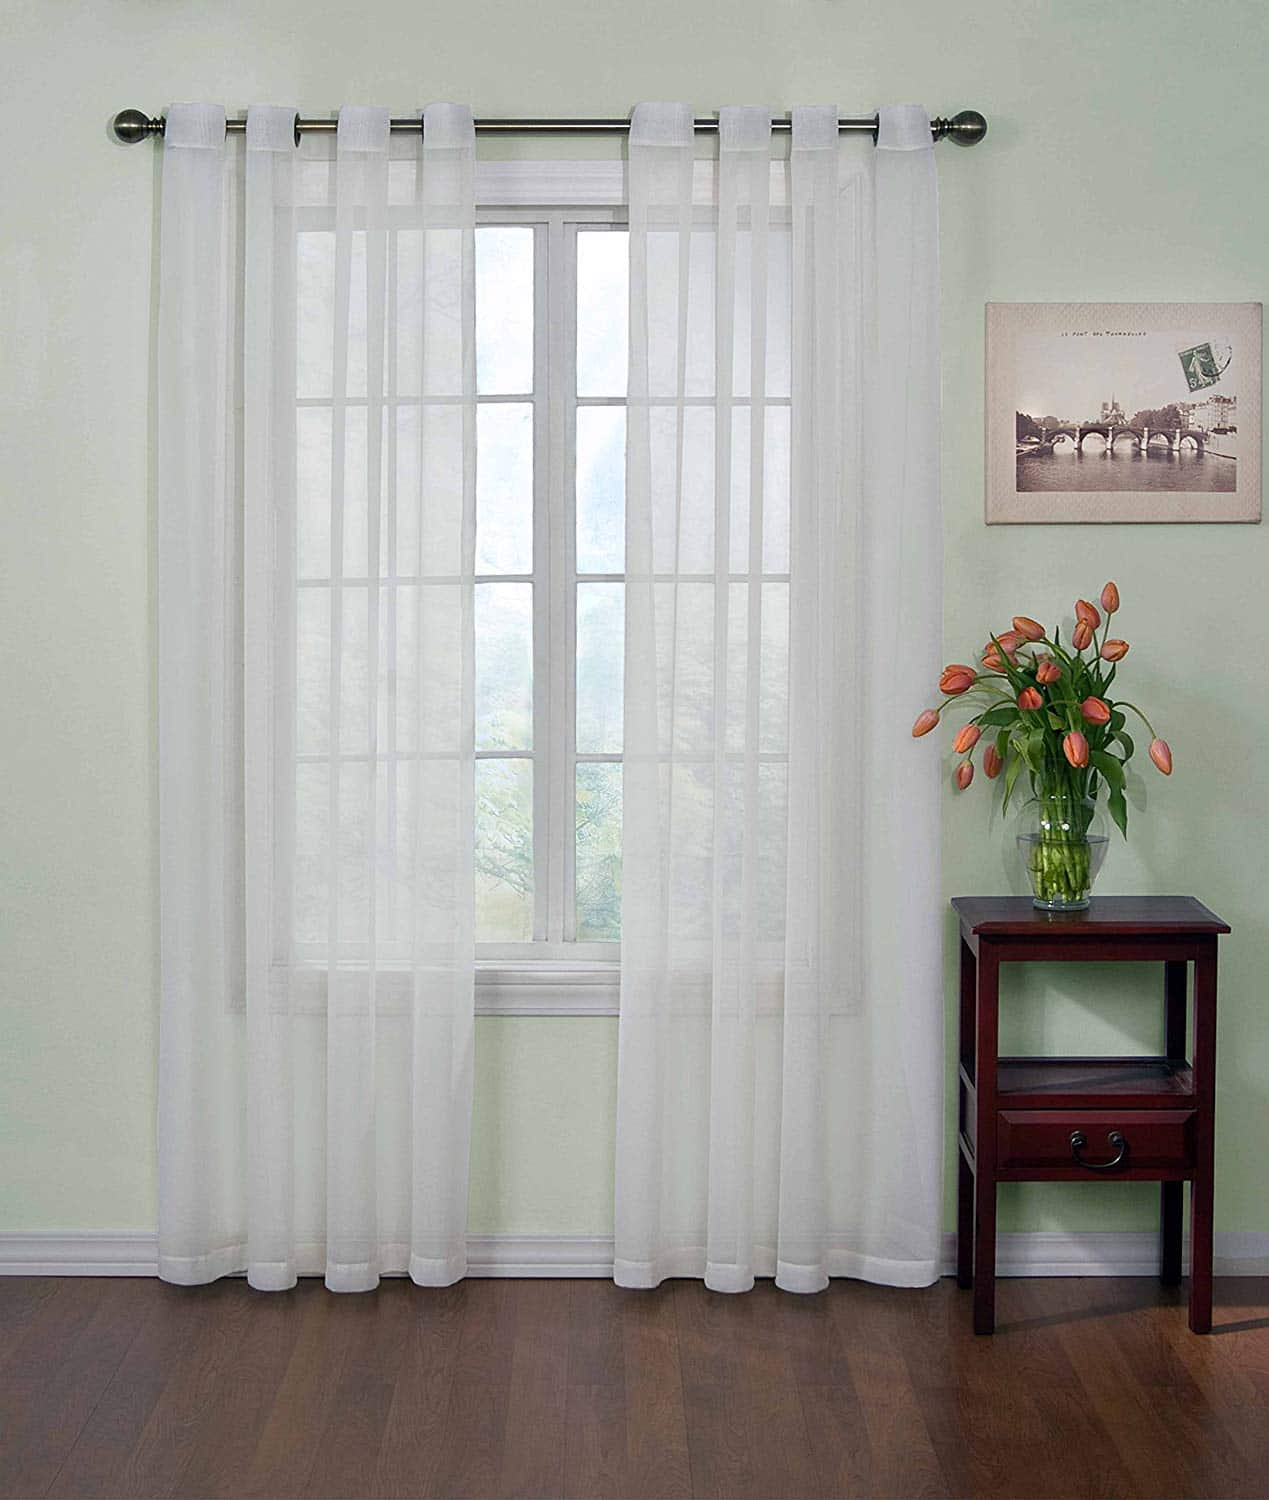 Multiple Style Curtain (Blackout, Sheer, Valance) Sales on Amazon as Low as $6.08 + Free Shipping w/PRIME